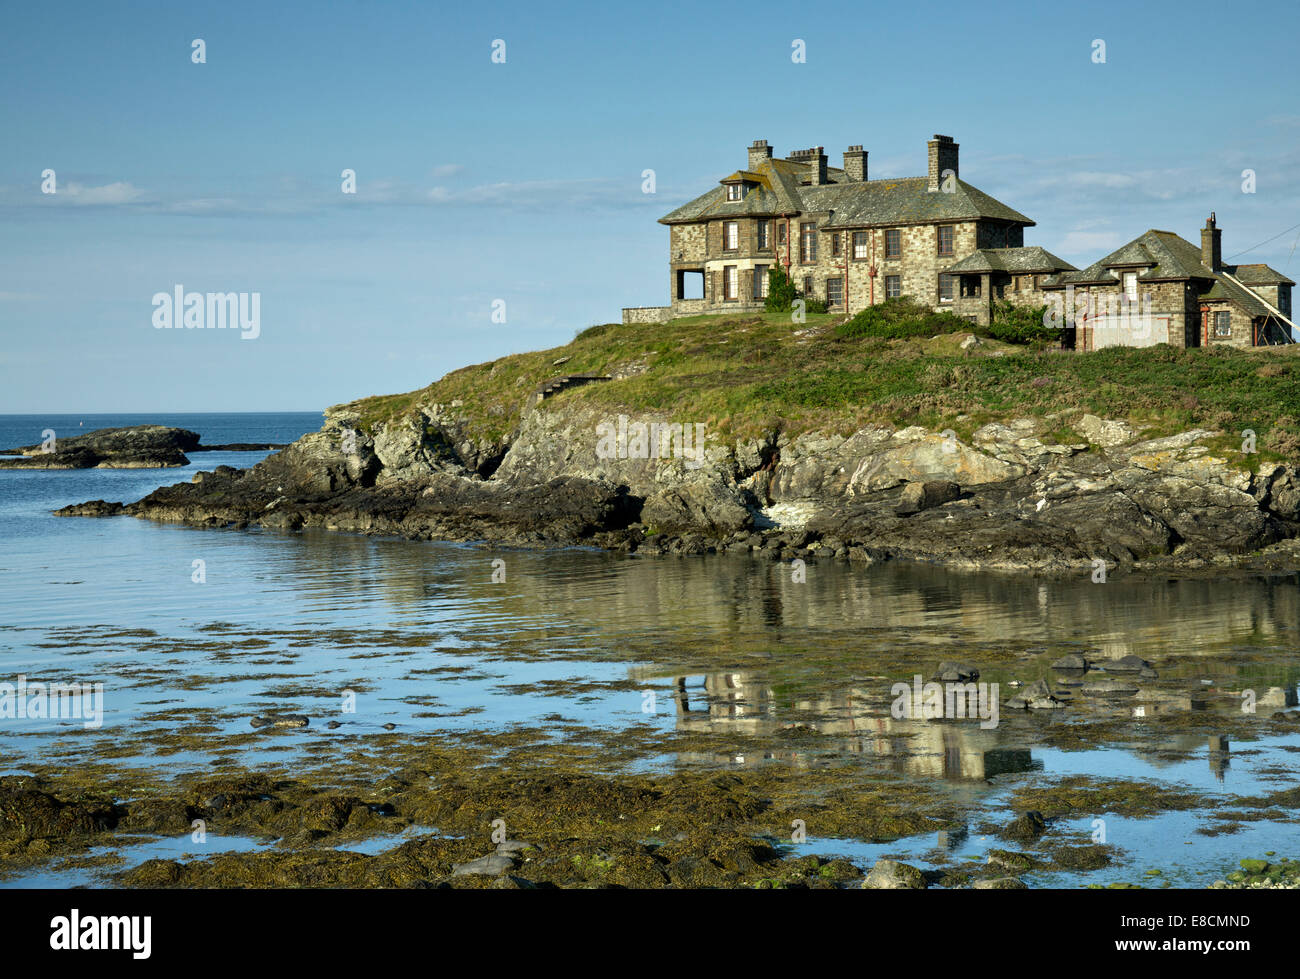 Craigy Y Mor The Haunted House Trearddur Bay On The